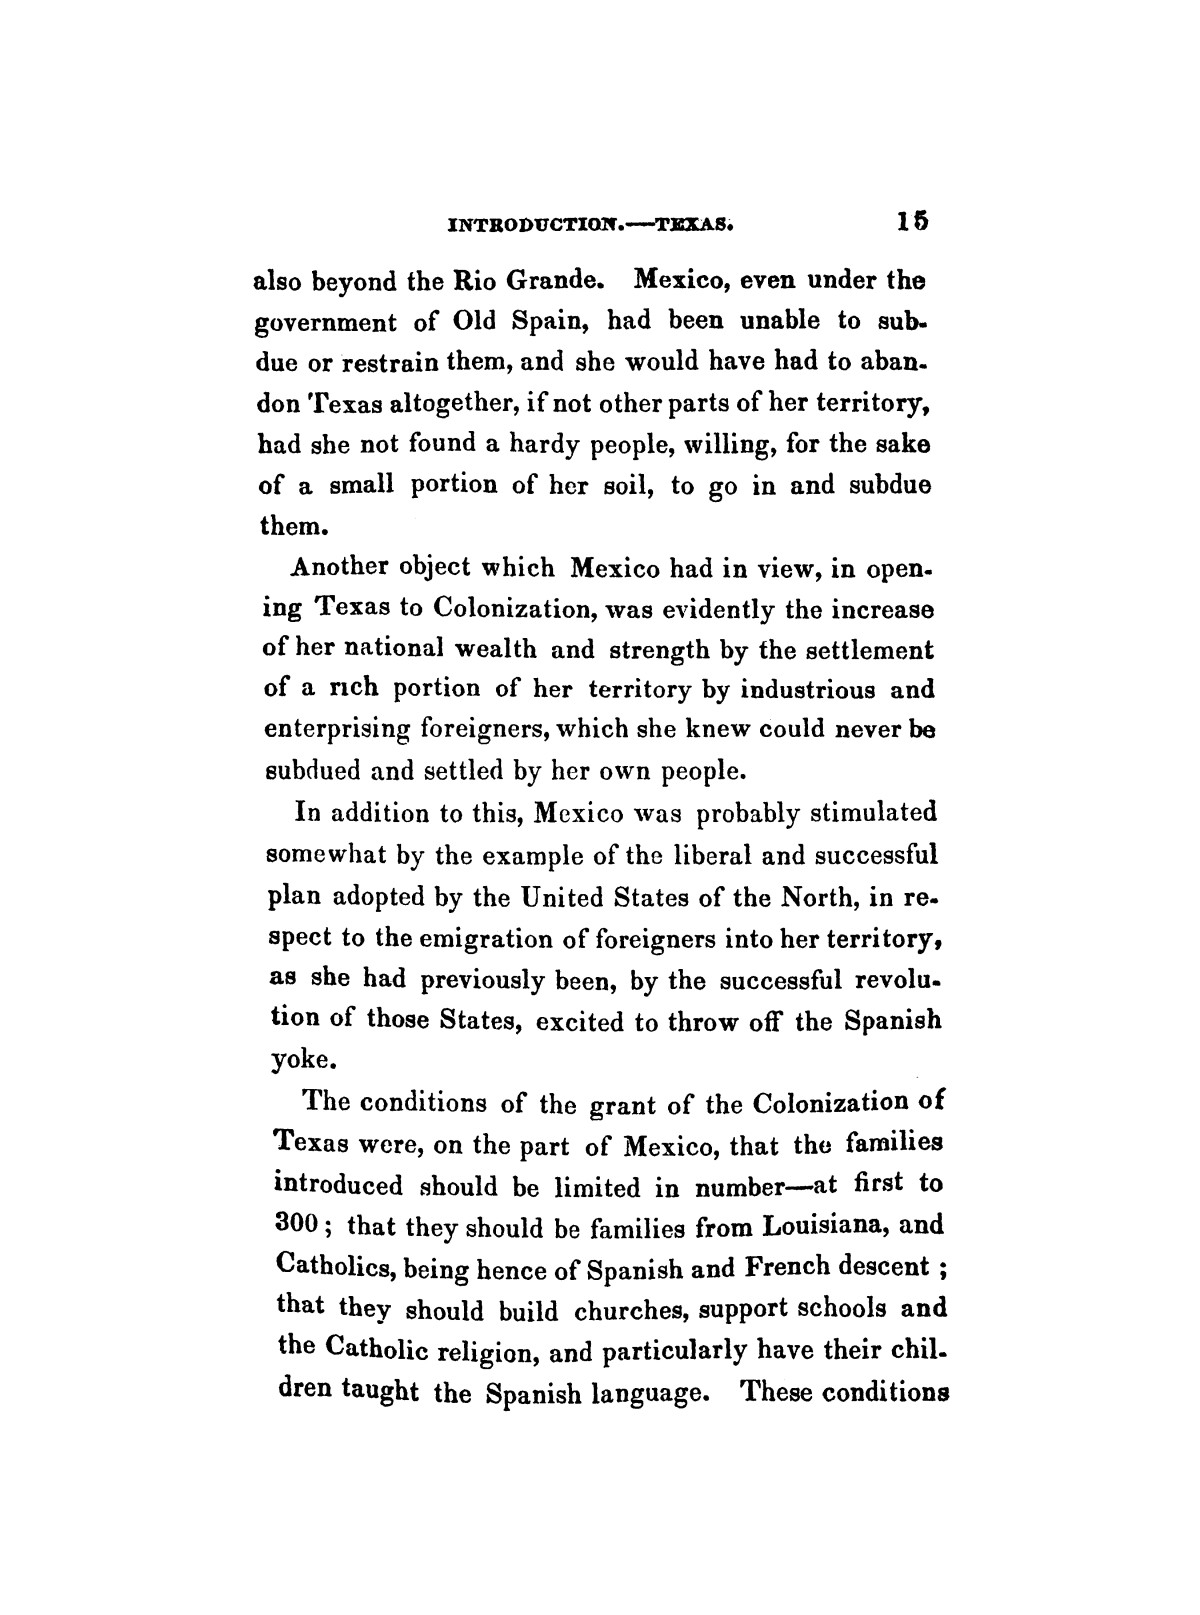 History of the revolution in Texas, particularly of the war of 1835 & '36; together with the latest geographical, topographical, and statistical accounts of the country, from the most authentic sources. Also, an appendix. By the Rev. C. Newell.                                                                                                      [Sequence #]: 27 of 227